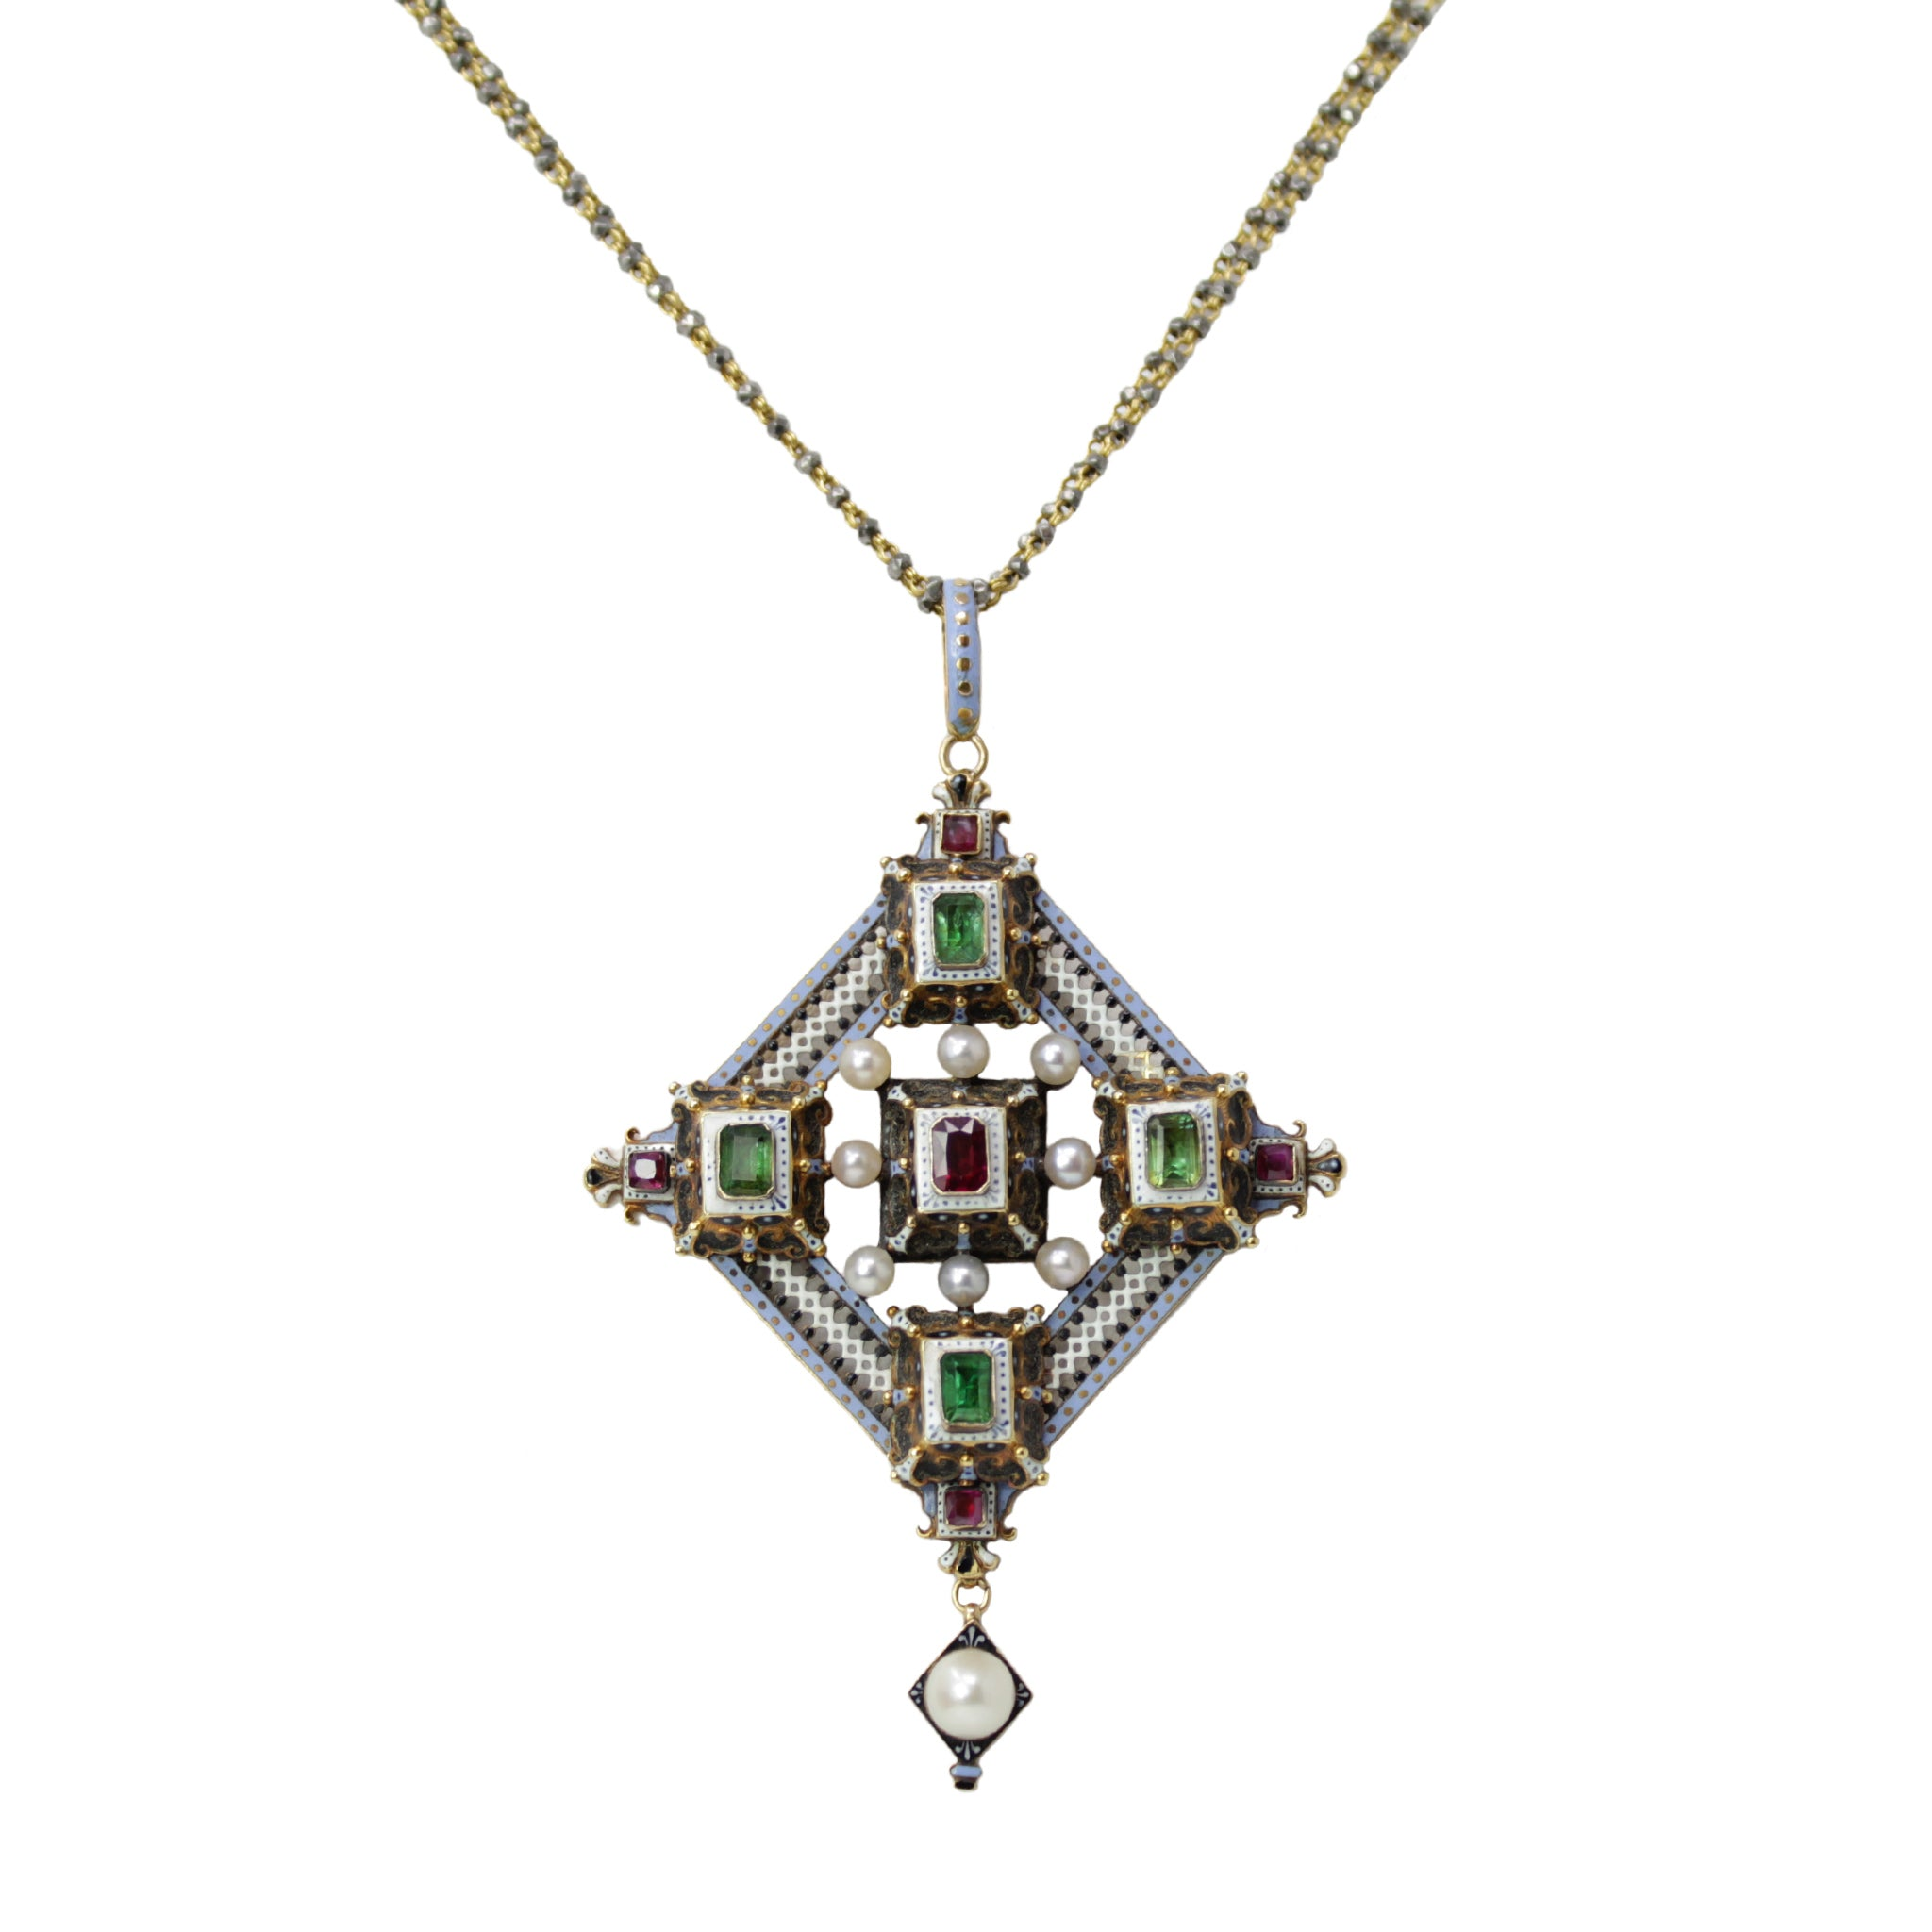 Empowering Emerald Necklace - Antique Ruby Emerald and Pearl Long Reliquary by G. Giuliano